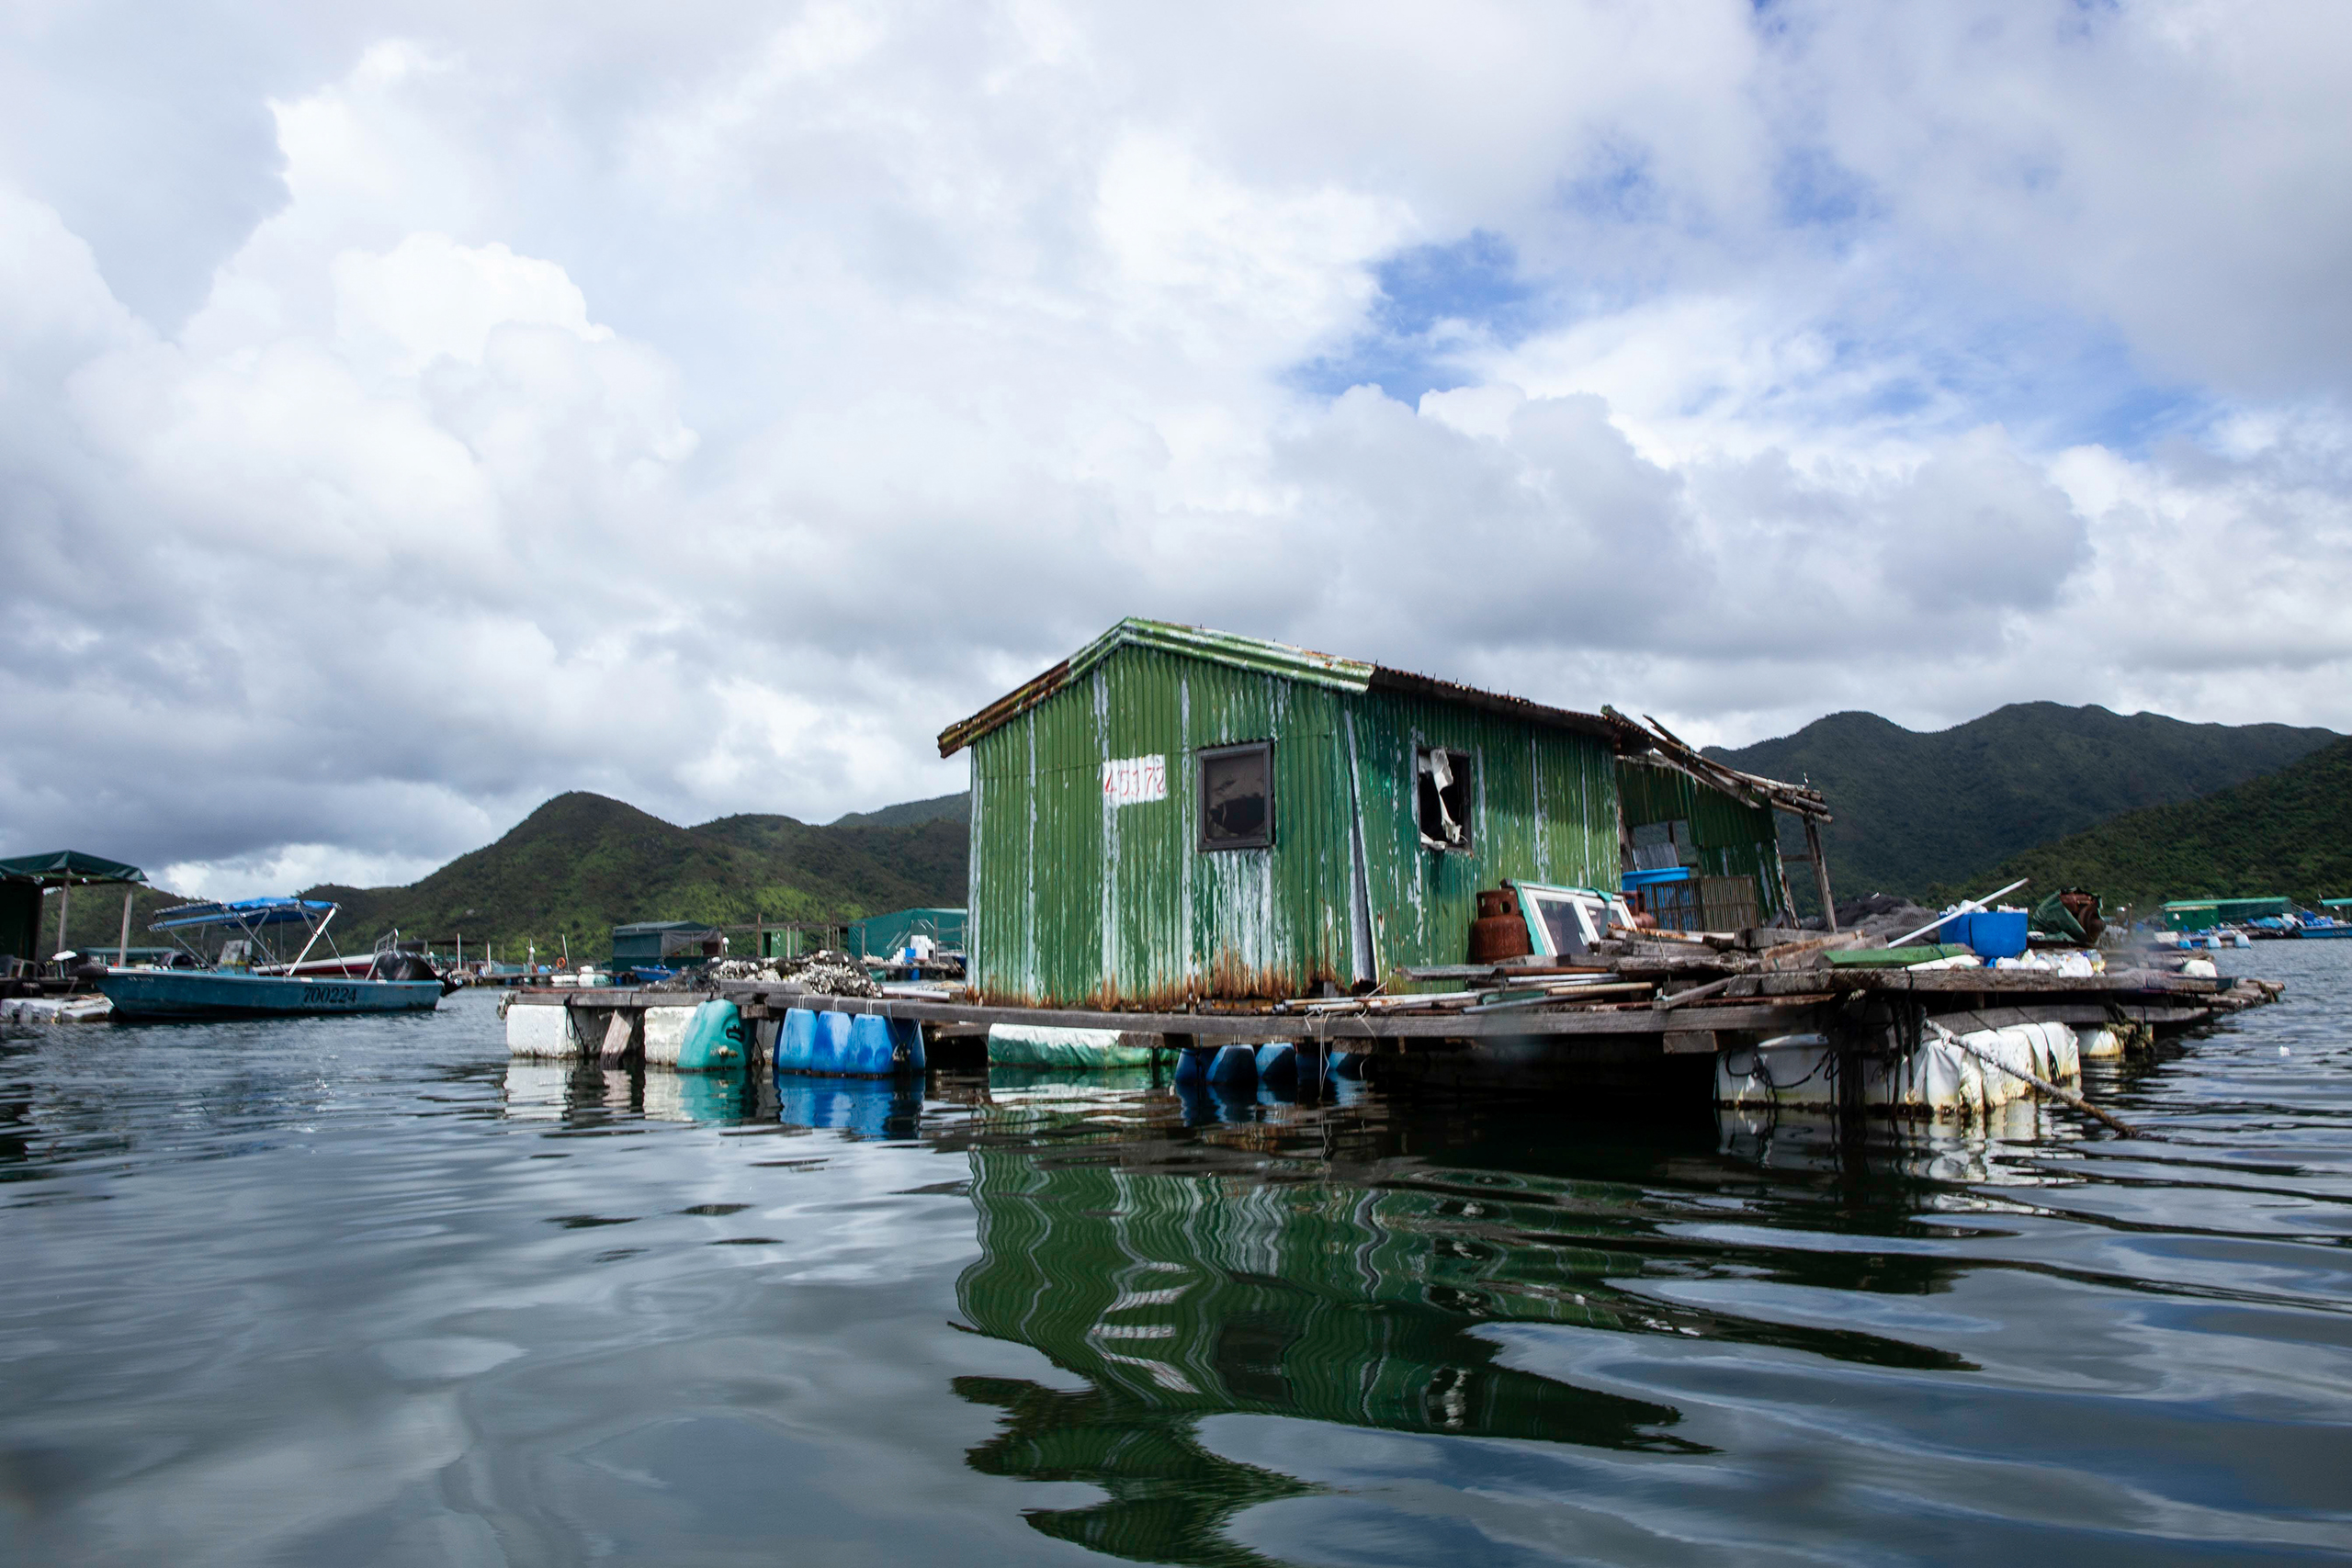 A floating fish farm in Three Fathoms Cove, home to one of Hong Kong's few remaining areas of mangroves. If practised sustainably, aquaculture can benefit from the ecosystem services mangroves provide. A richly biodiverse habitat, these intertidal forests offer a safe haven for fish to breed and raise their young, and also help clean the water of pollutants. (Image: Katherine Cheng / China Dialogue)